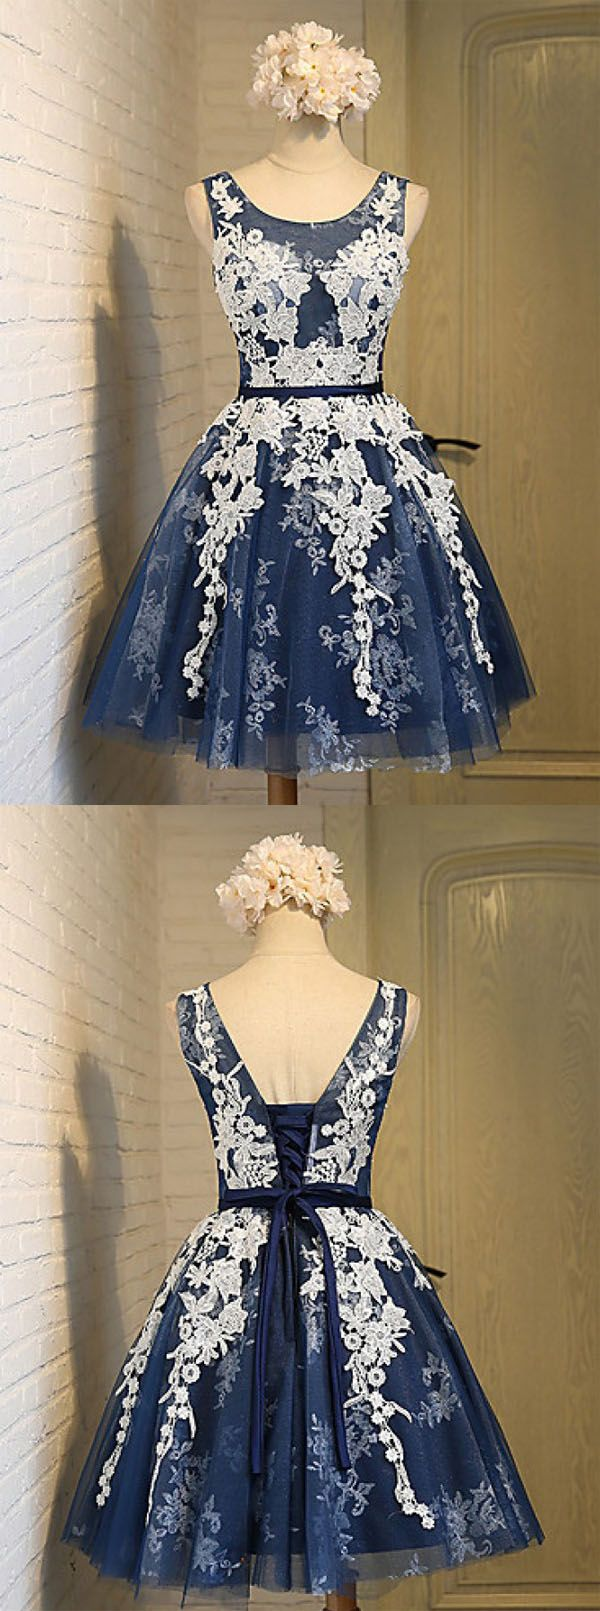 Blue lace homecoming dress